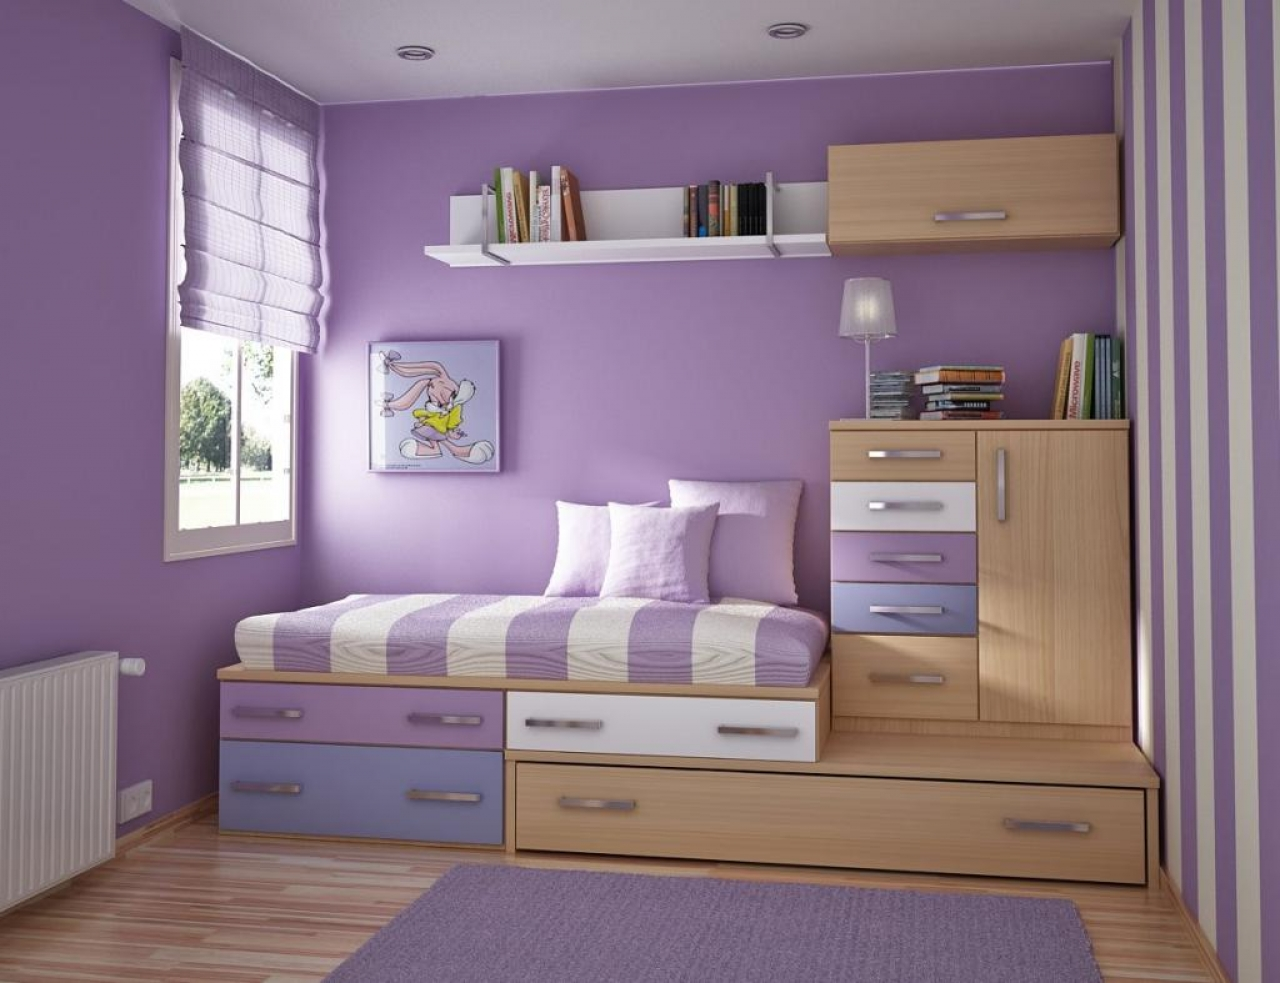 Customize Ikea Furniture Interior Design ~ Interior design colorful kids rooms